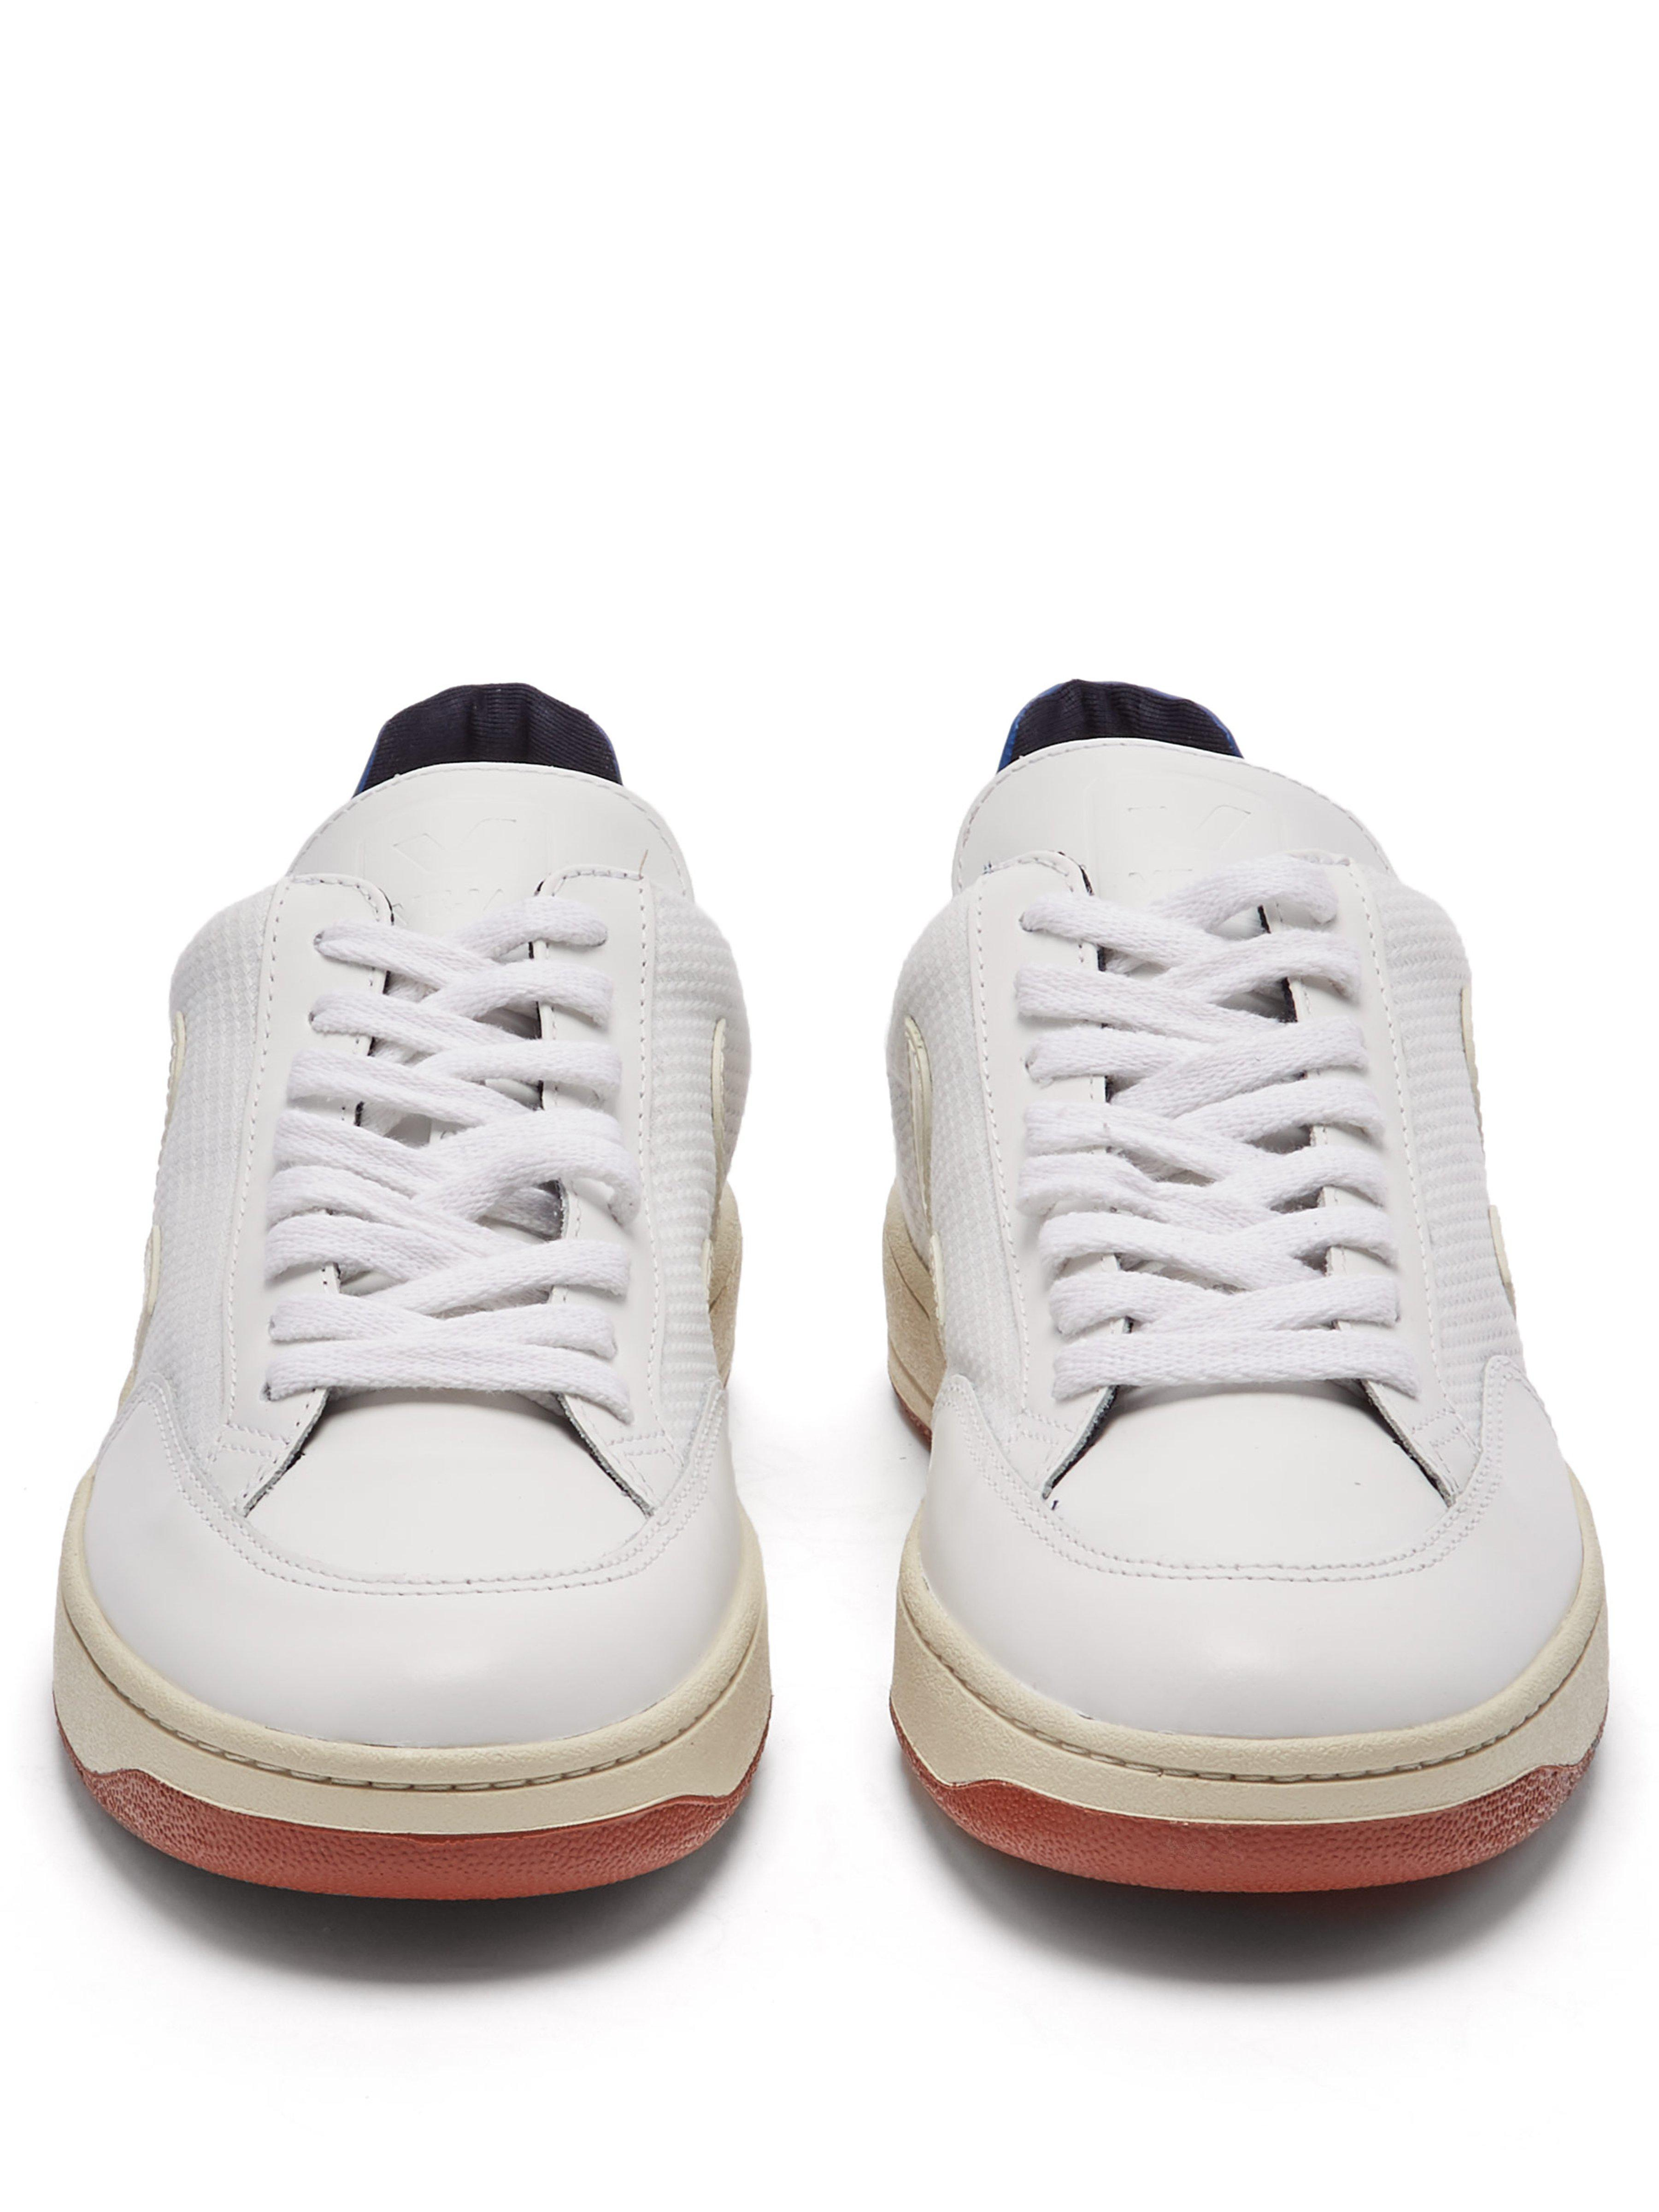 27229dc7edfd2e Veja V-12 Low-top Leather And Mesh Trainers in White - Lyst